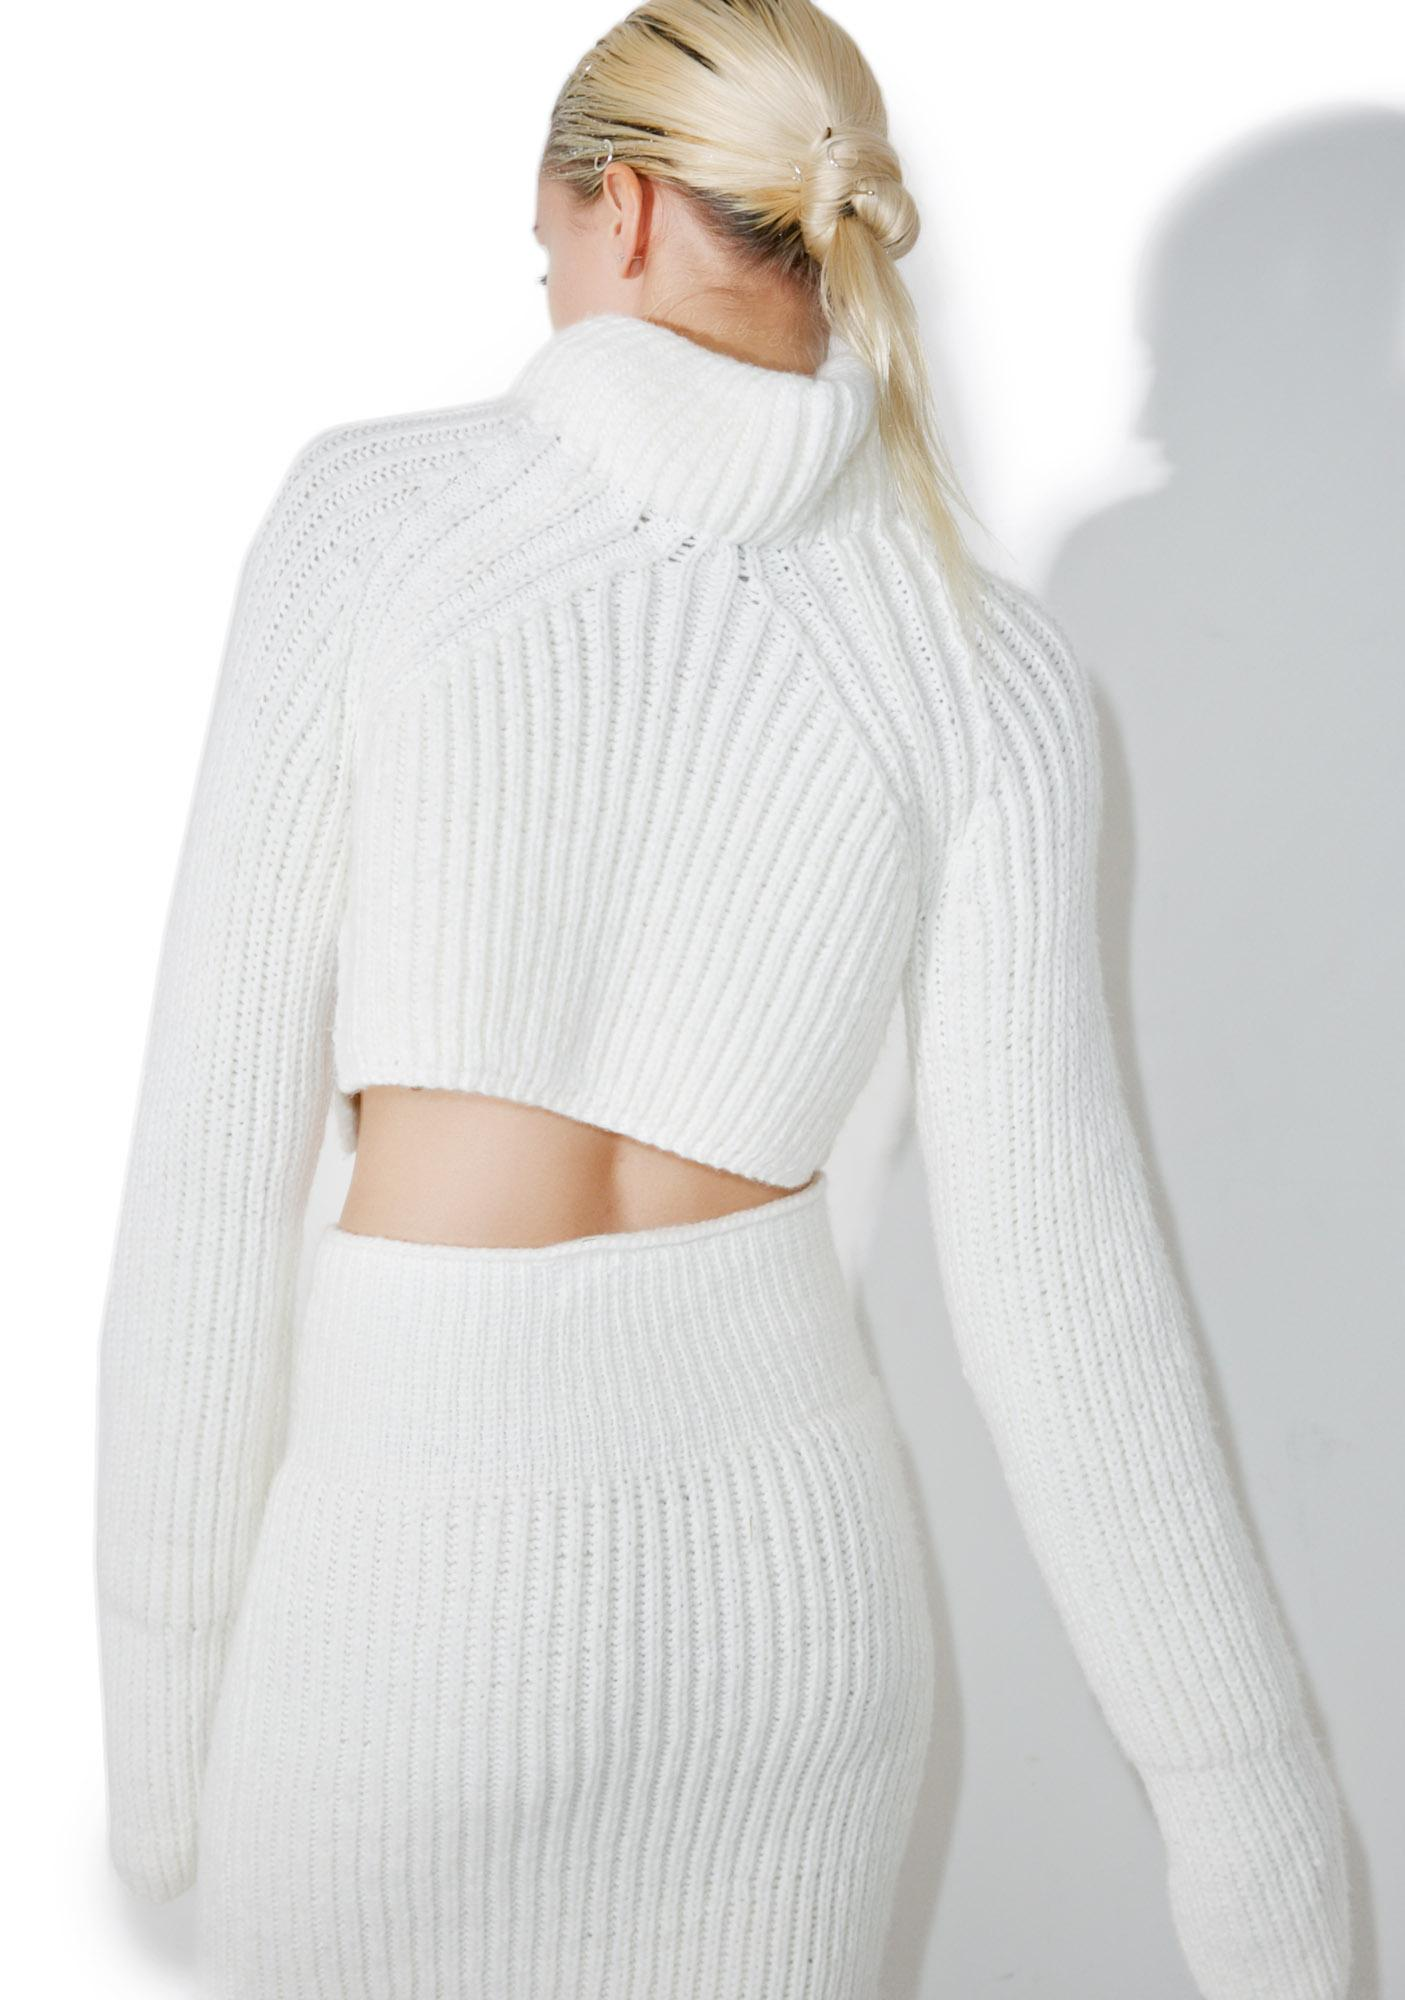 Maria ke Fisherman Creme Knit Top